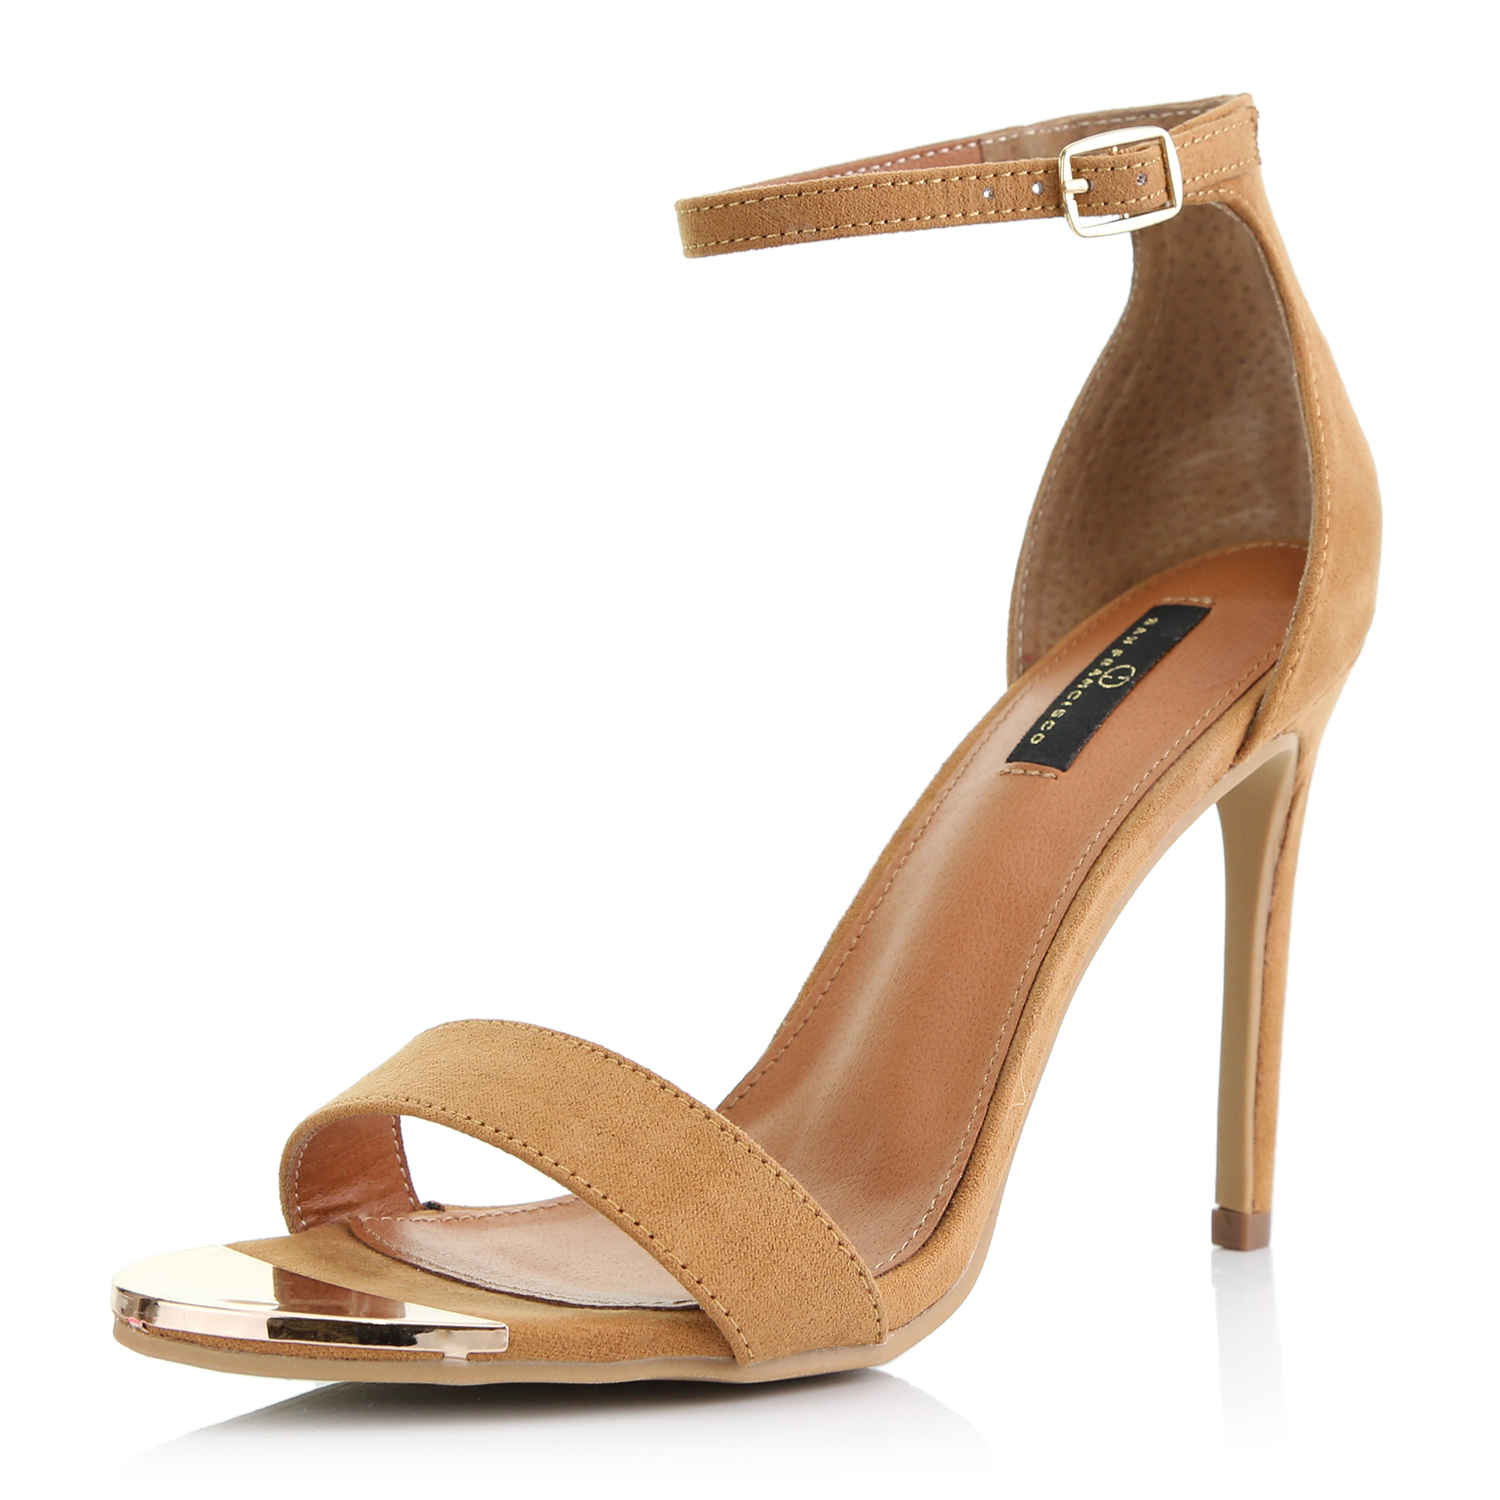 DailyShoes Ankle Strap Stiletto Heels